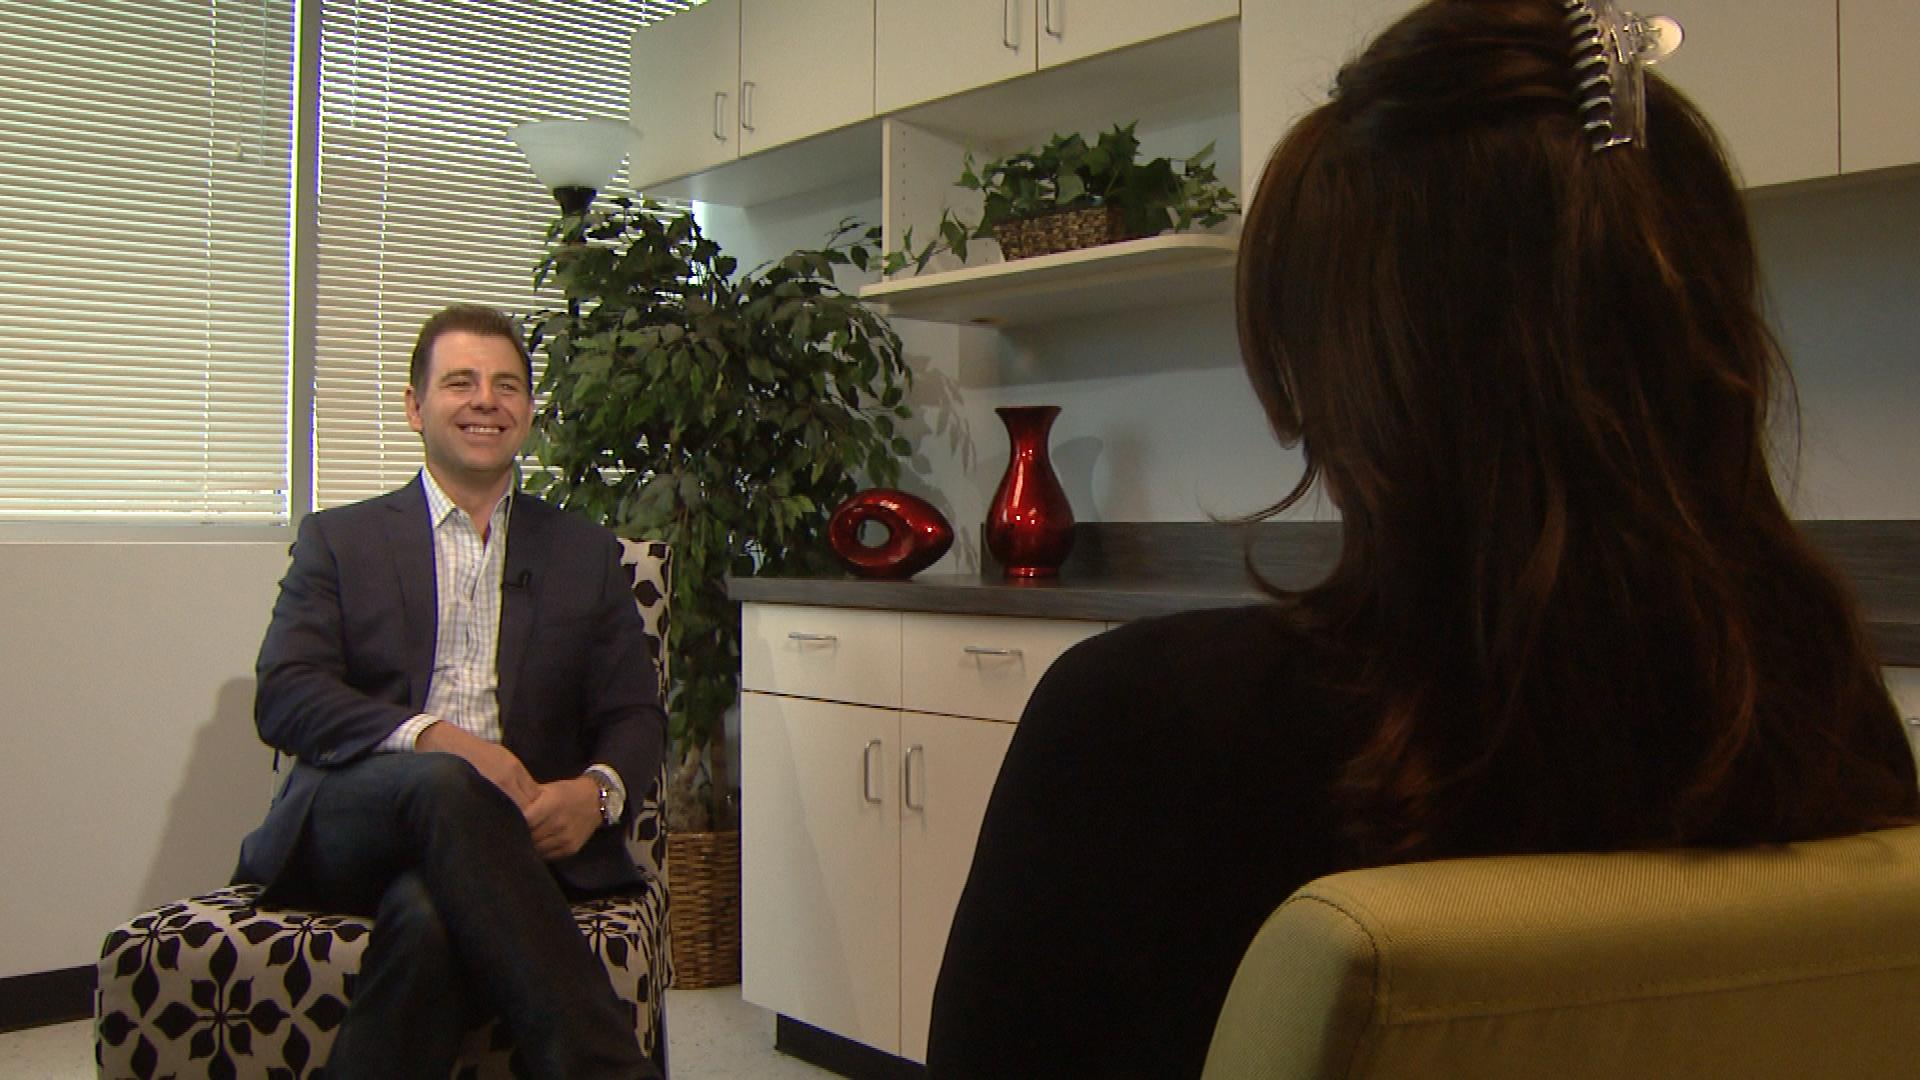 CBS4's Jennifer Brice interviews Raleigh House CEO and owner Eric Lapp (credit: CBS)